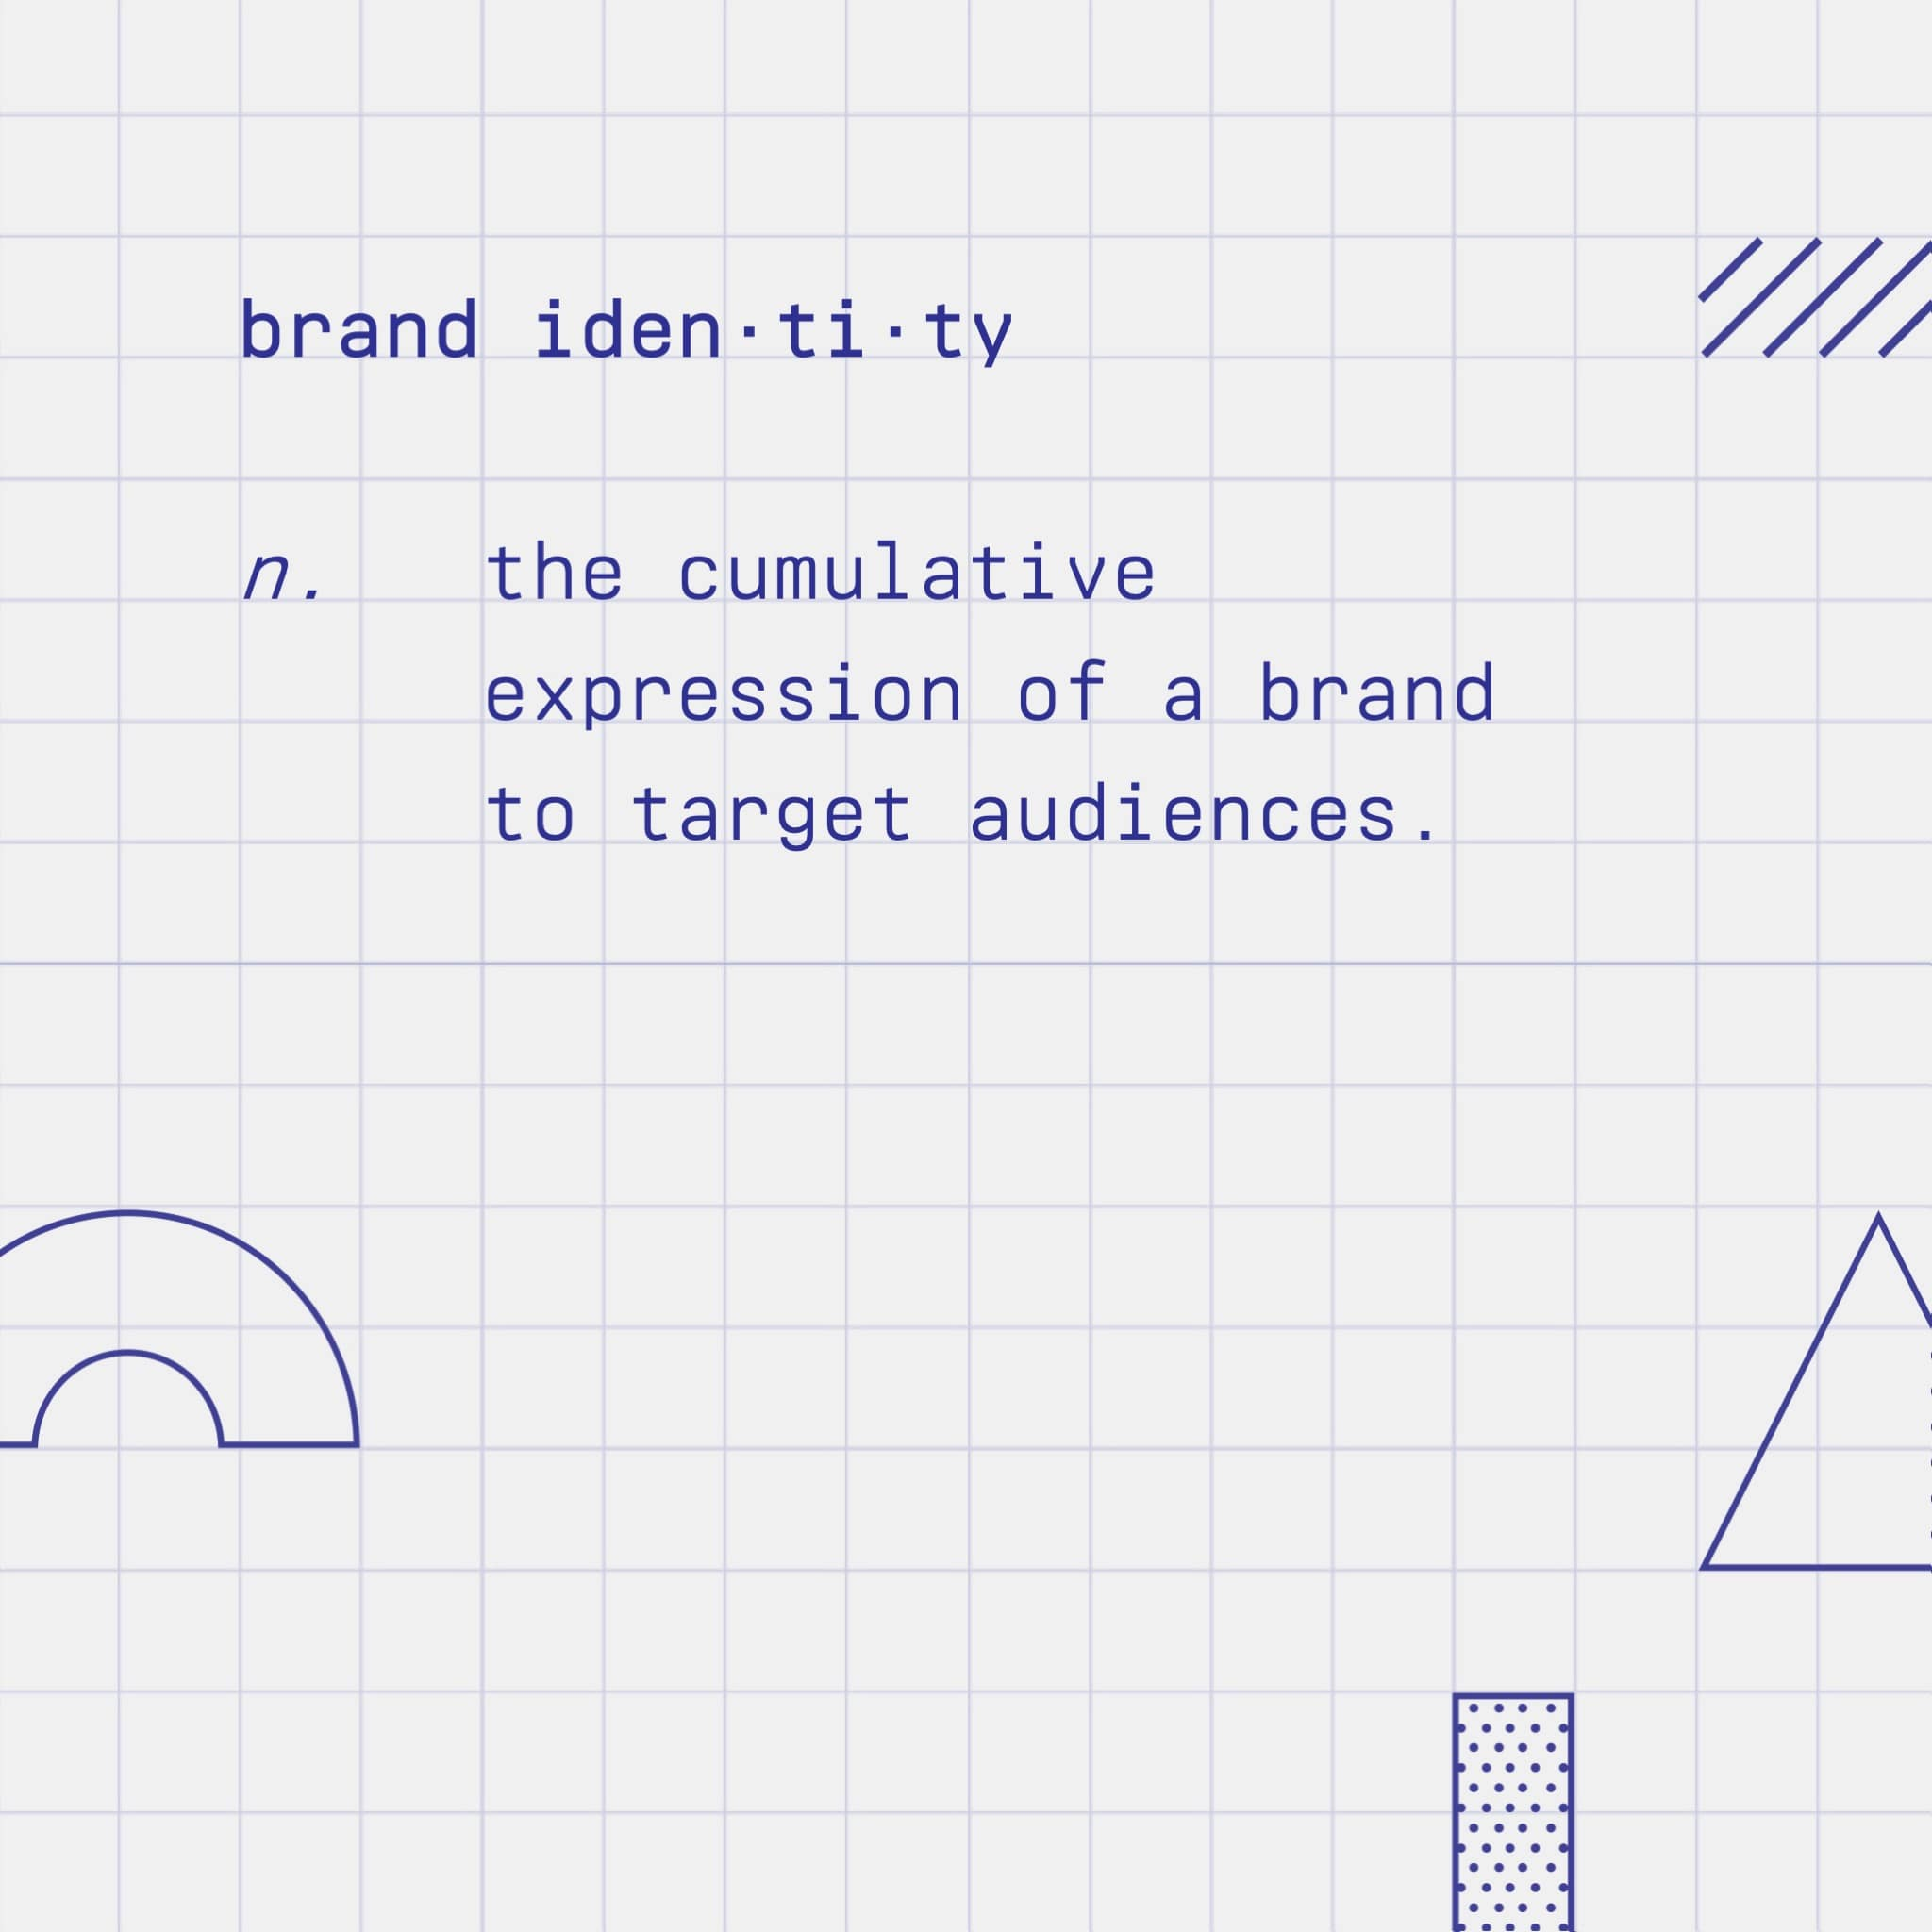 Definition of brand identity on How Brands Are Built